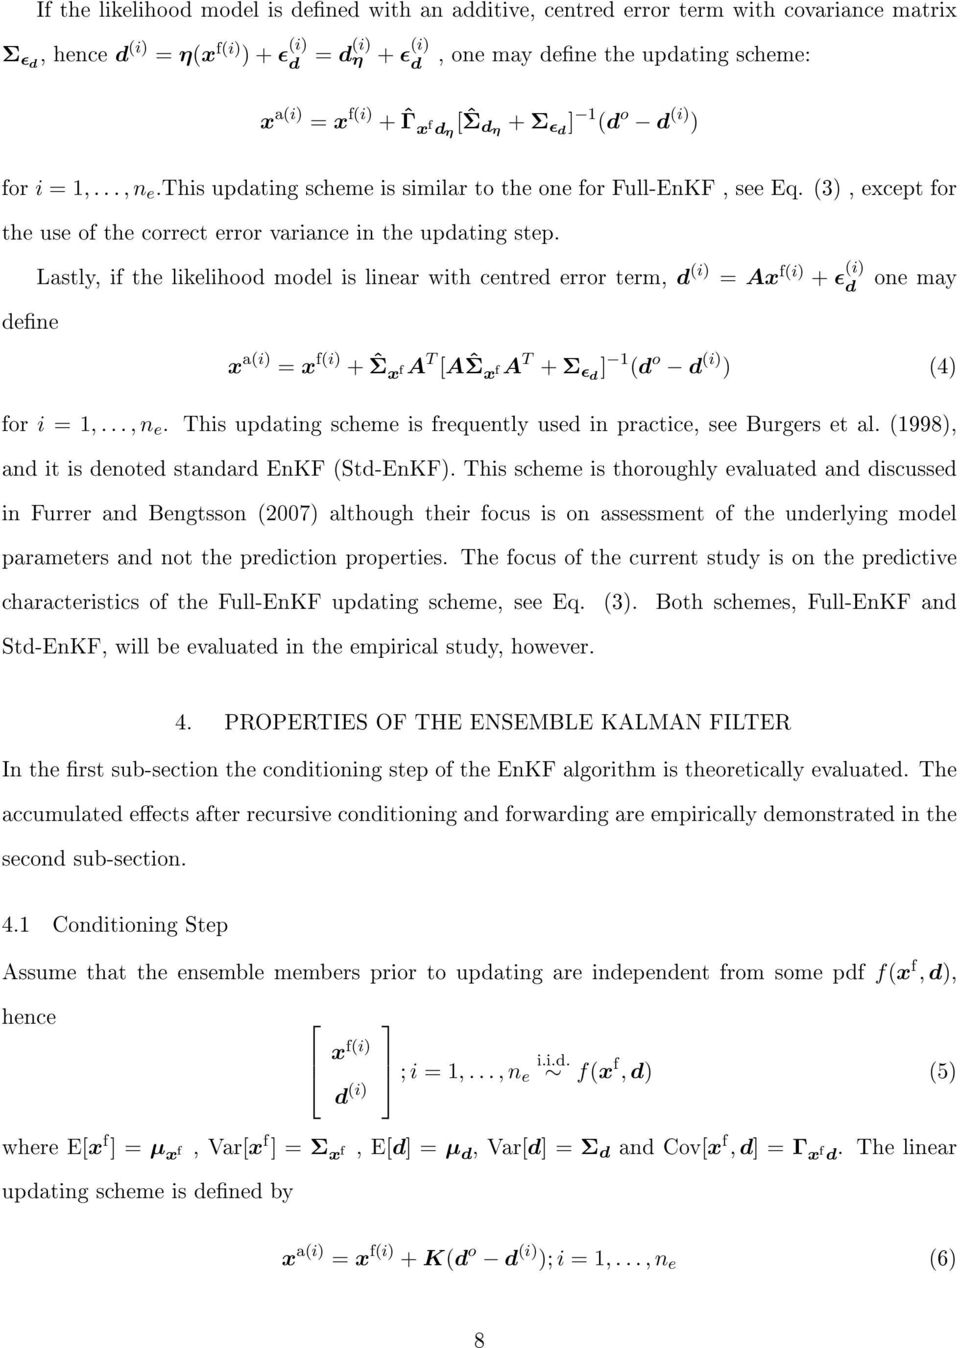 Uncertainty Quantication in the Ensemble Kalman Filter - PDF